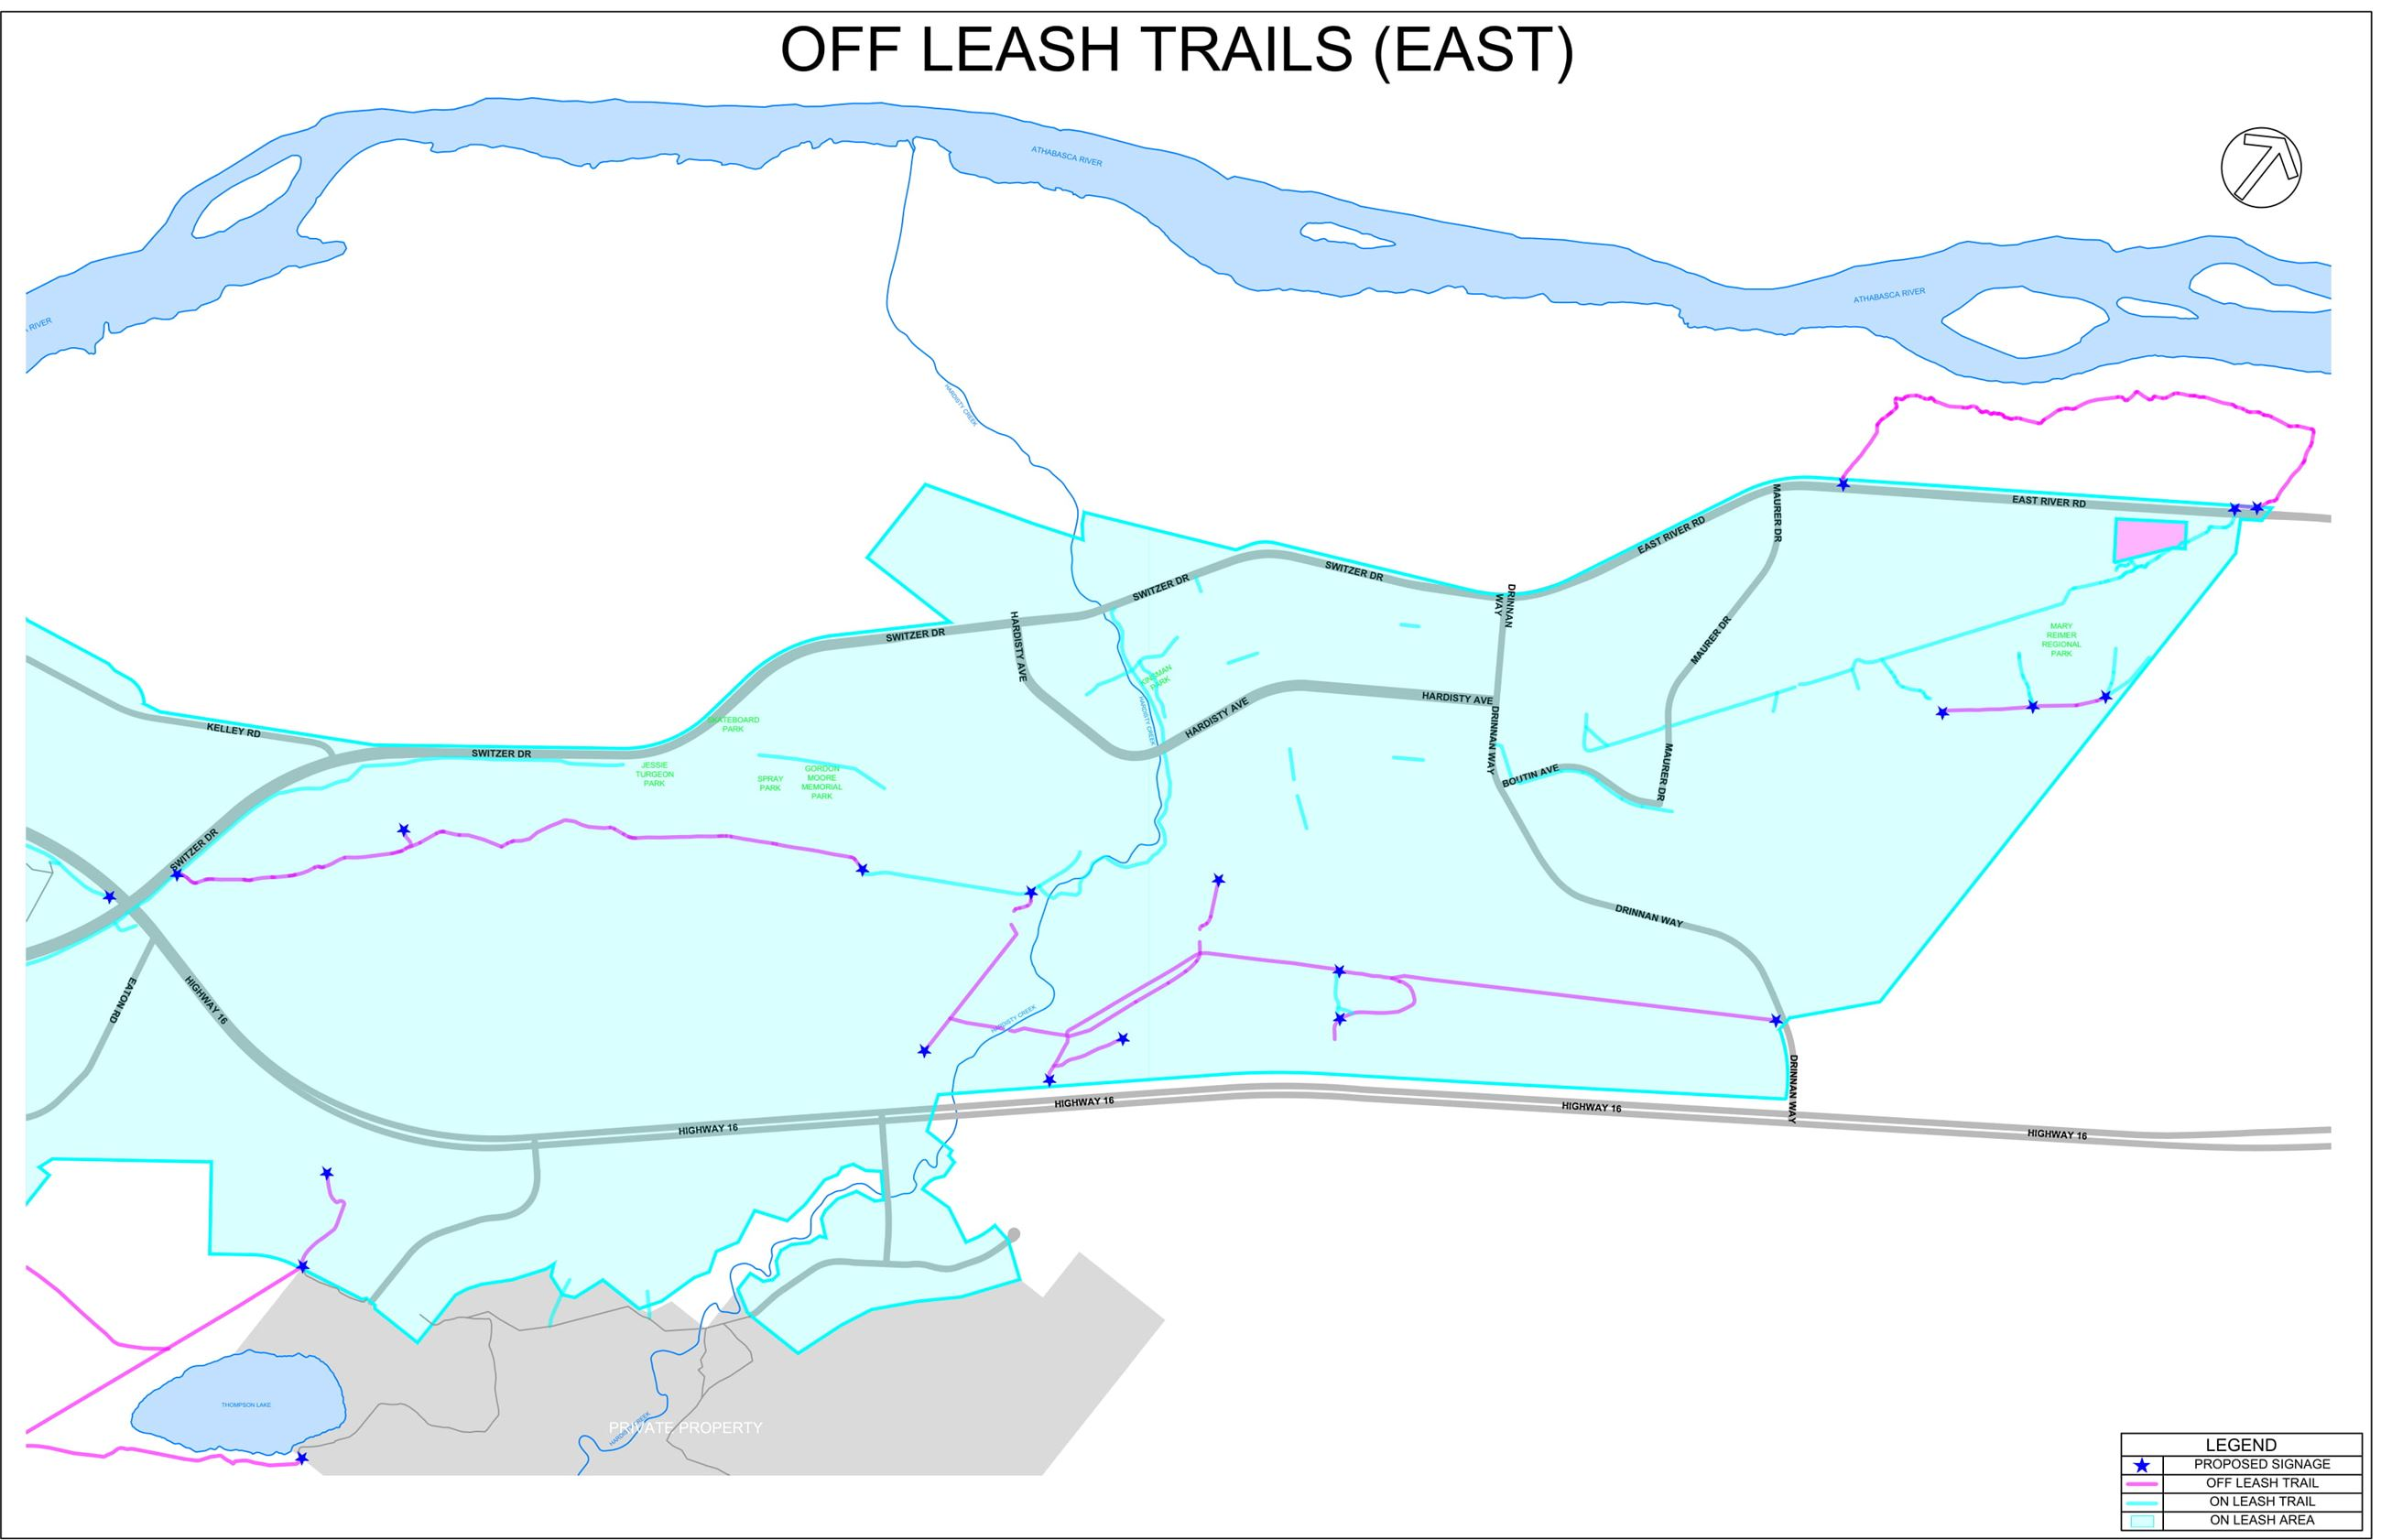 2018 06 11 Off Leash Areas-East 1-1